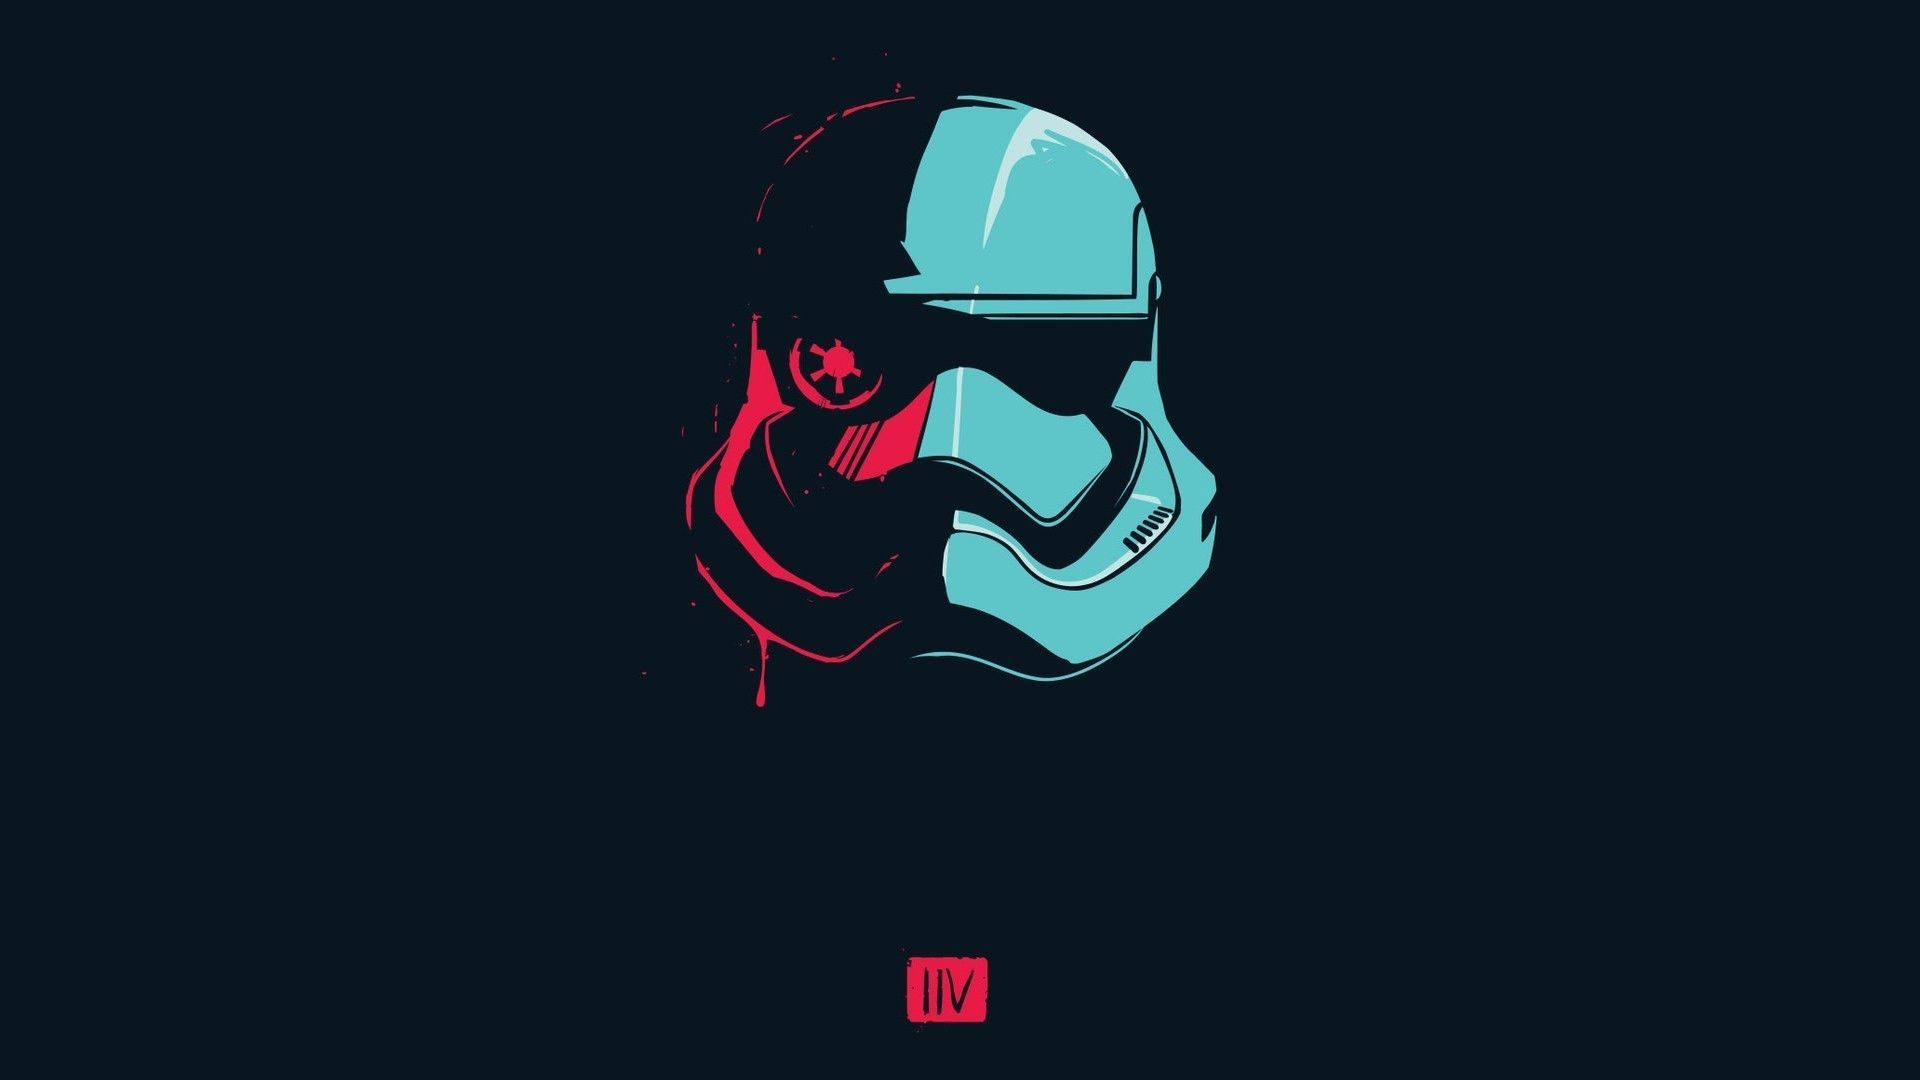 First Order Stormtrooper Wallpapers Top Free First Order Stormtrooper Backgrounds Wallpaperaccess